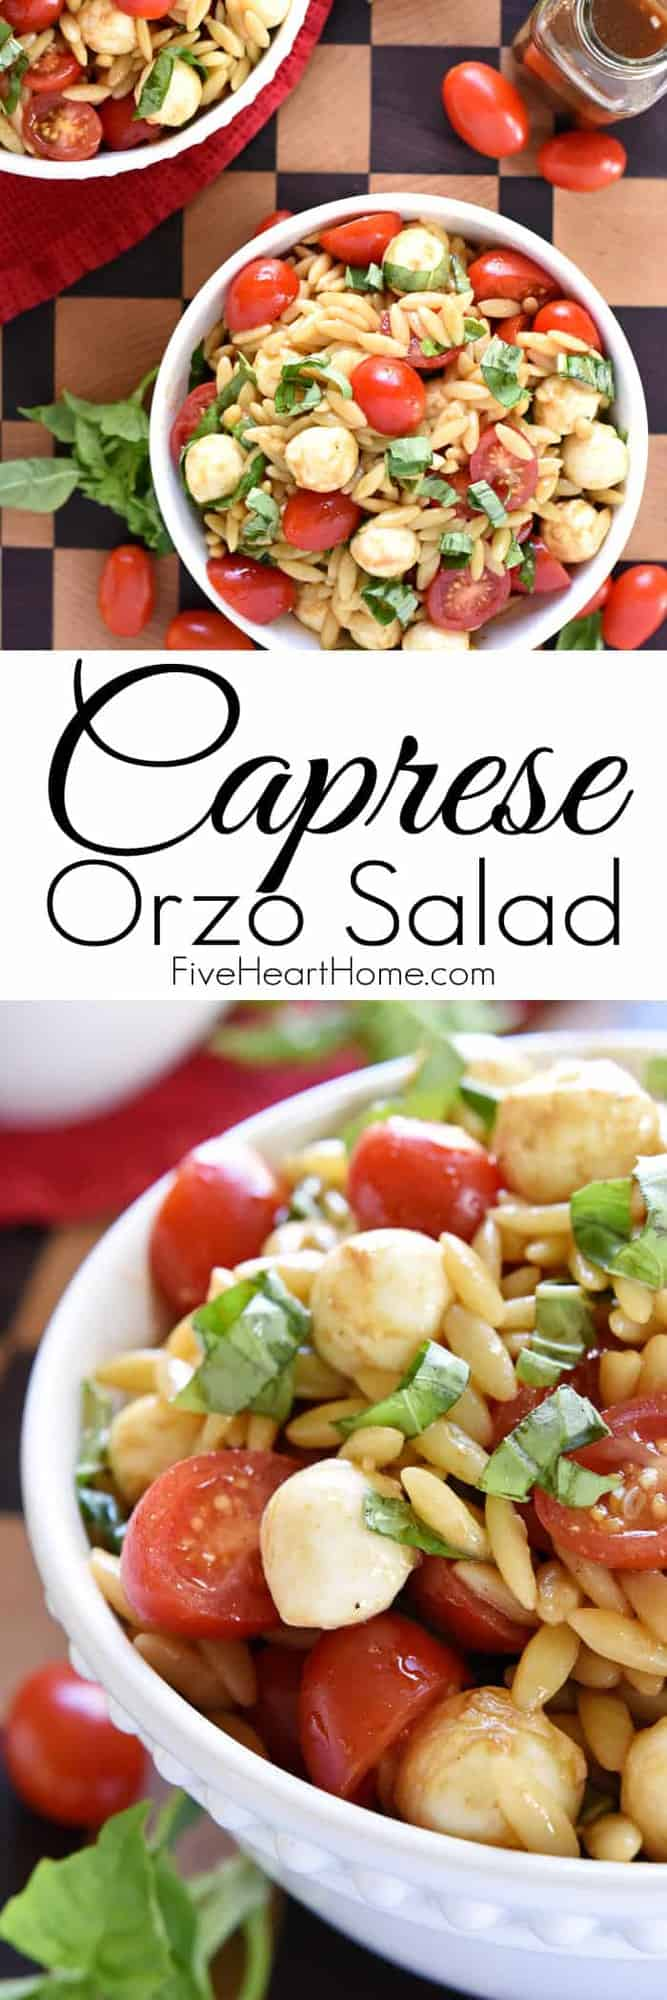 Caprese Orzo Pasta Salad by Five Heart Home | Delicious Pasta Salad Recipes just in time for Summer!